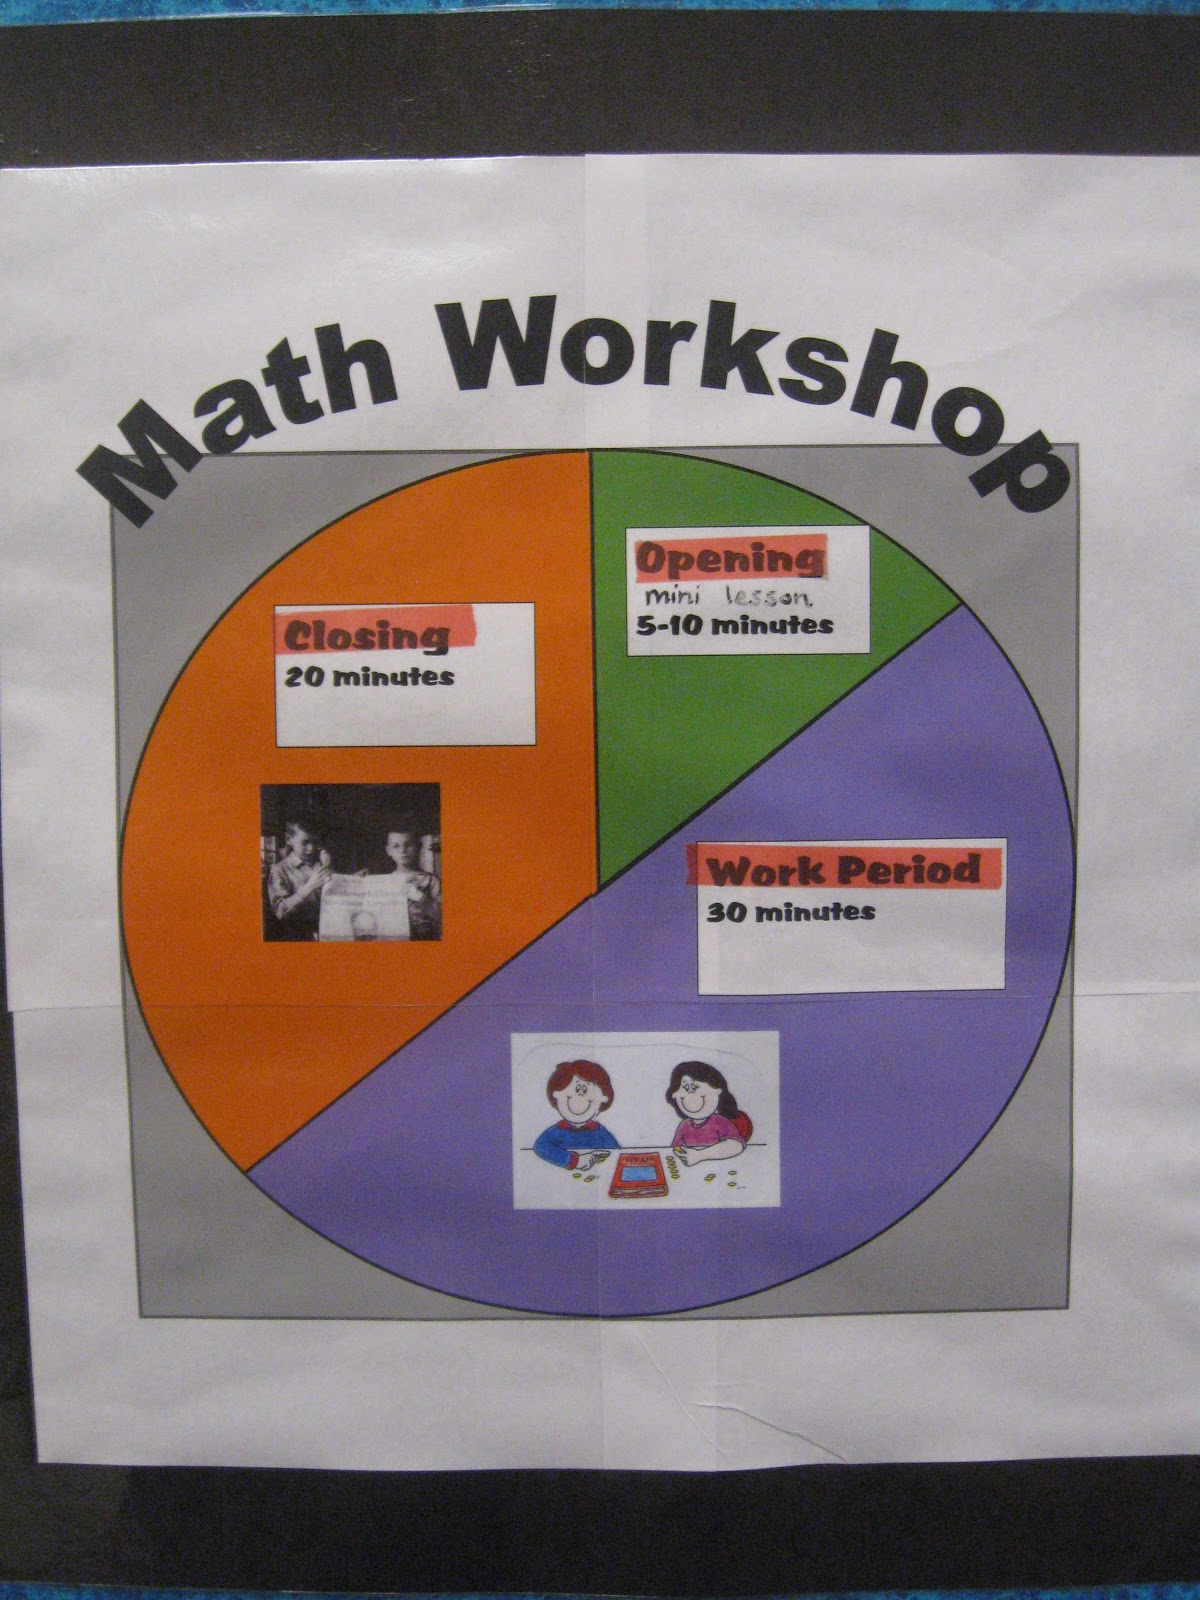 Stiebers te 818 blog this is the math workshop piechart which shows the breakdown of a typical americas choice workshop the same format shown above is also used for readers nvjuhfo Choice Image